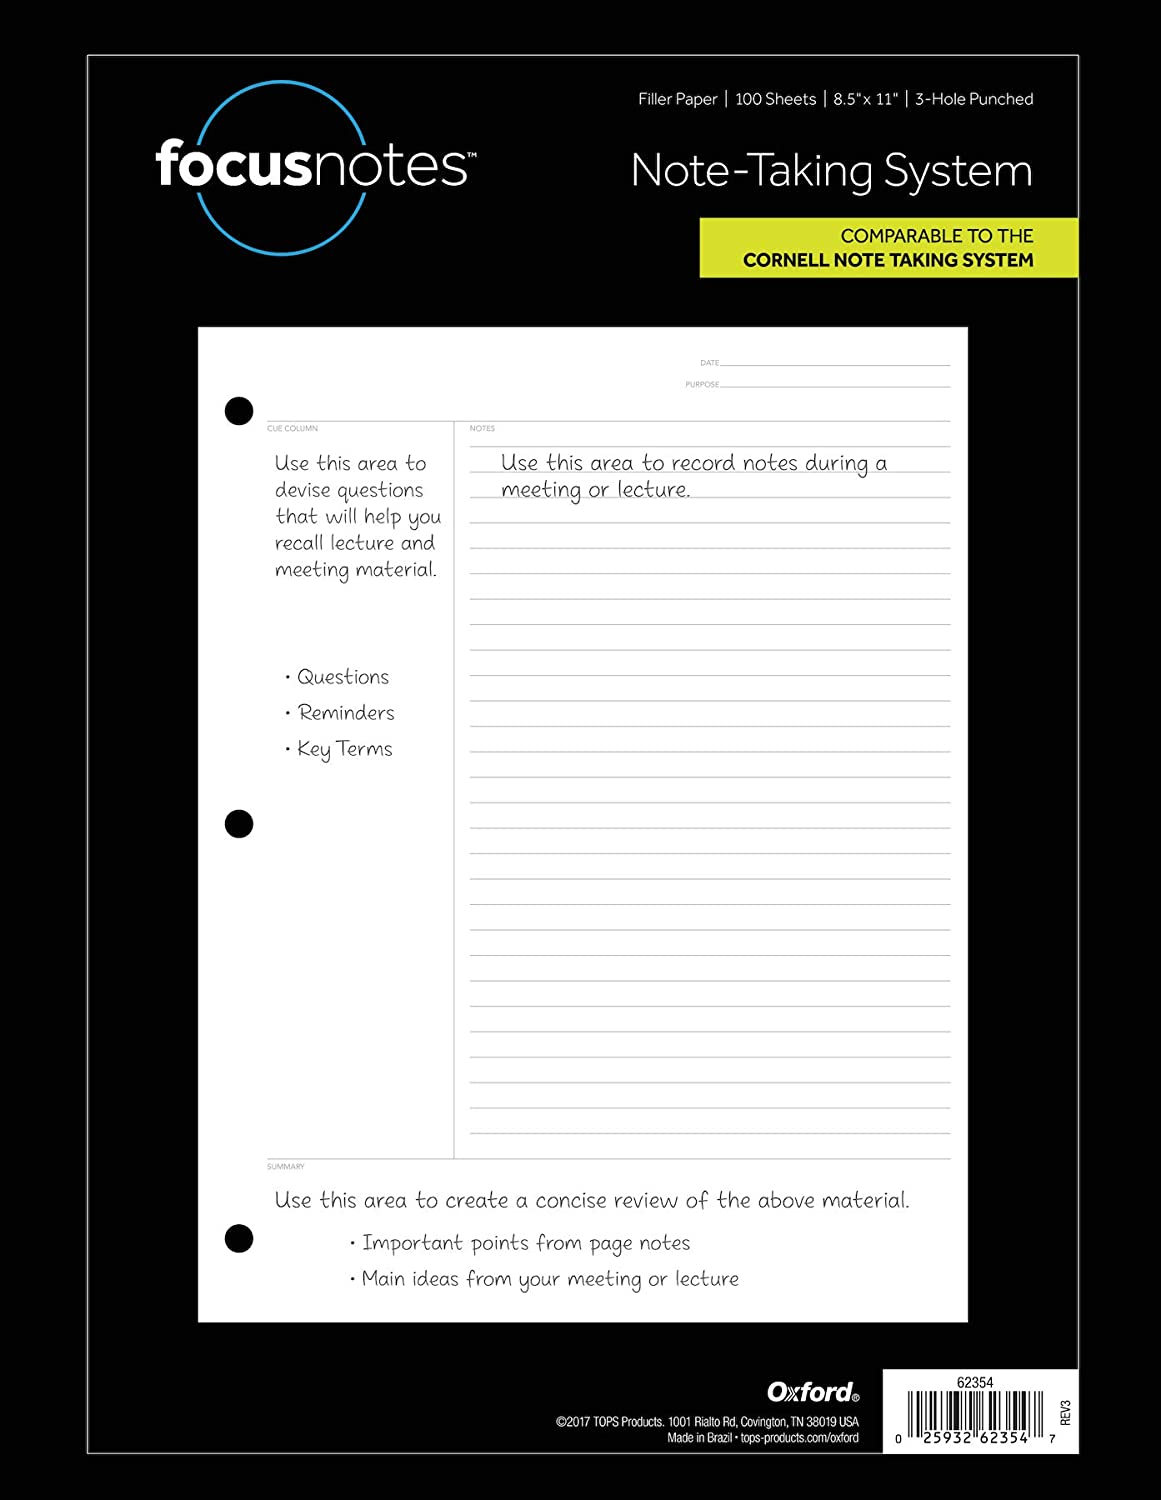 Tops FocusNotes Note Taking System Filler Paper, 8.5 x 11 Inch, 3-Hole Punched, White, 100 Sheets (62354)